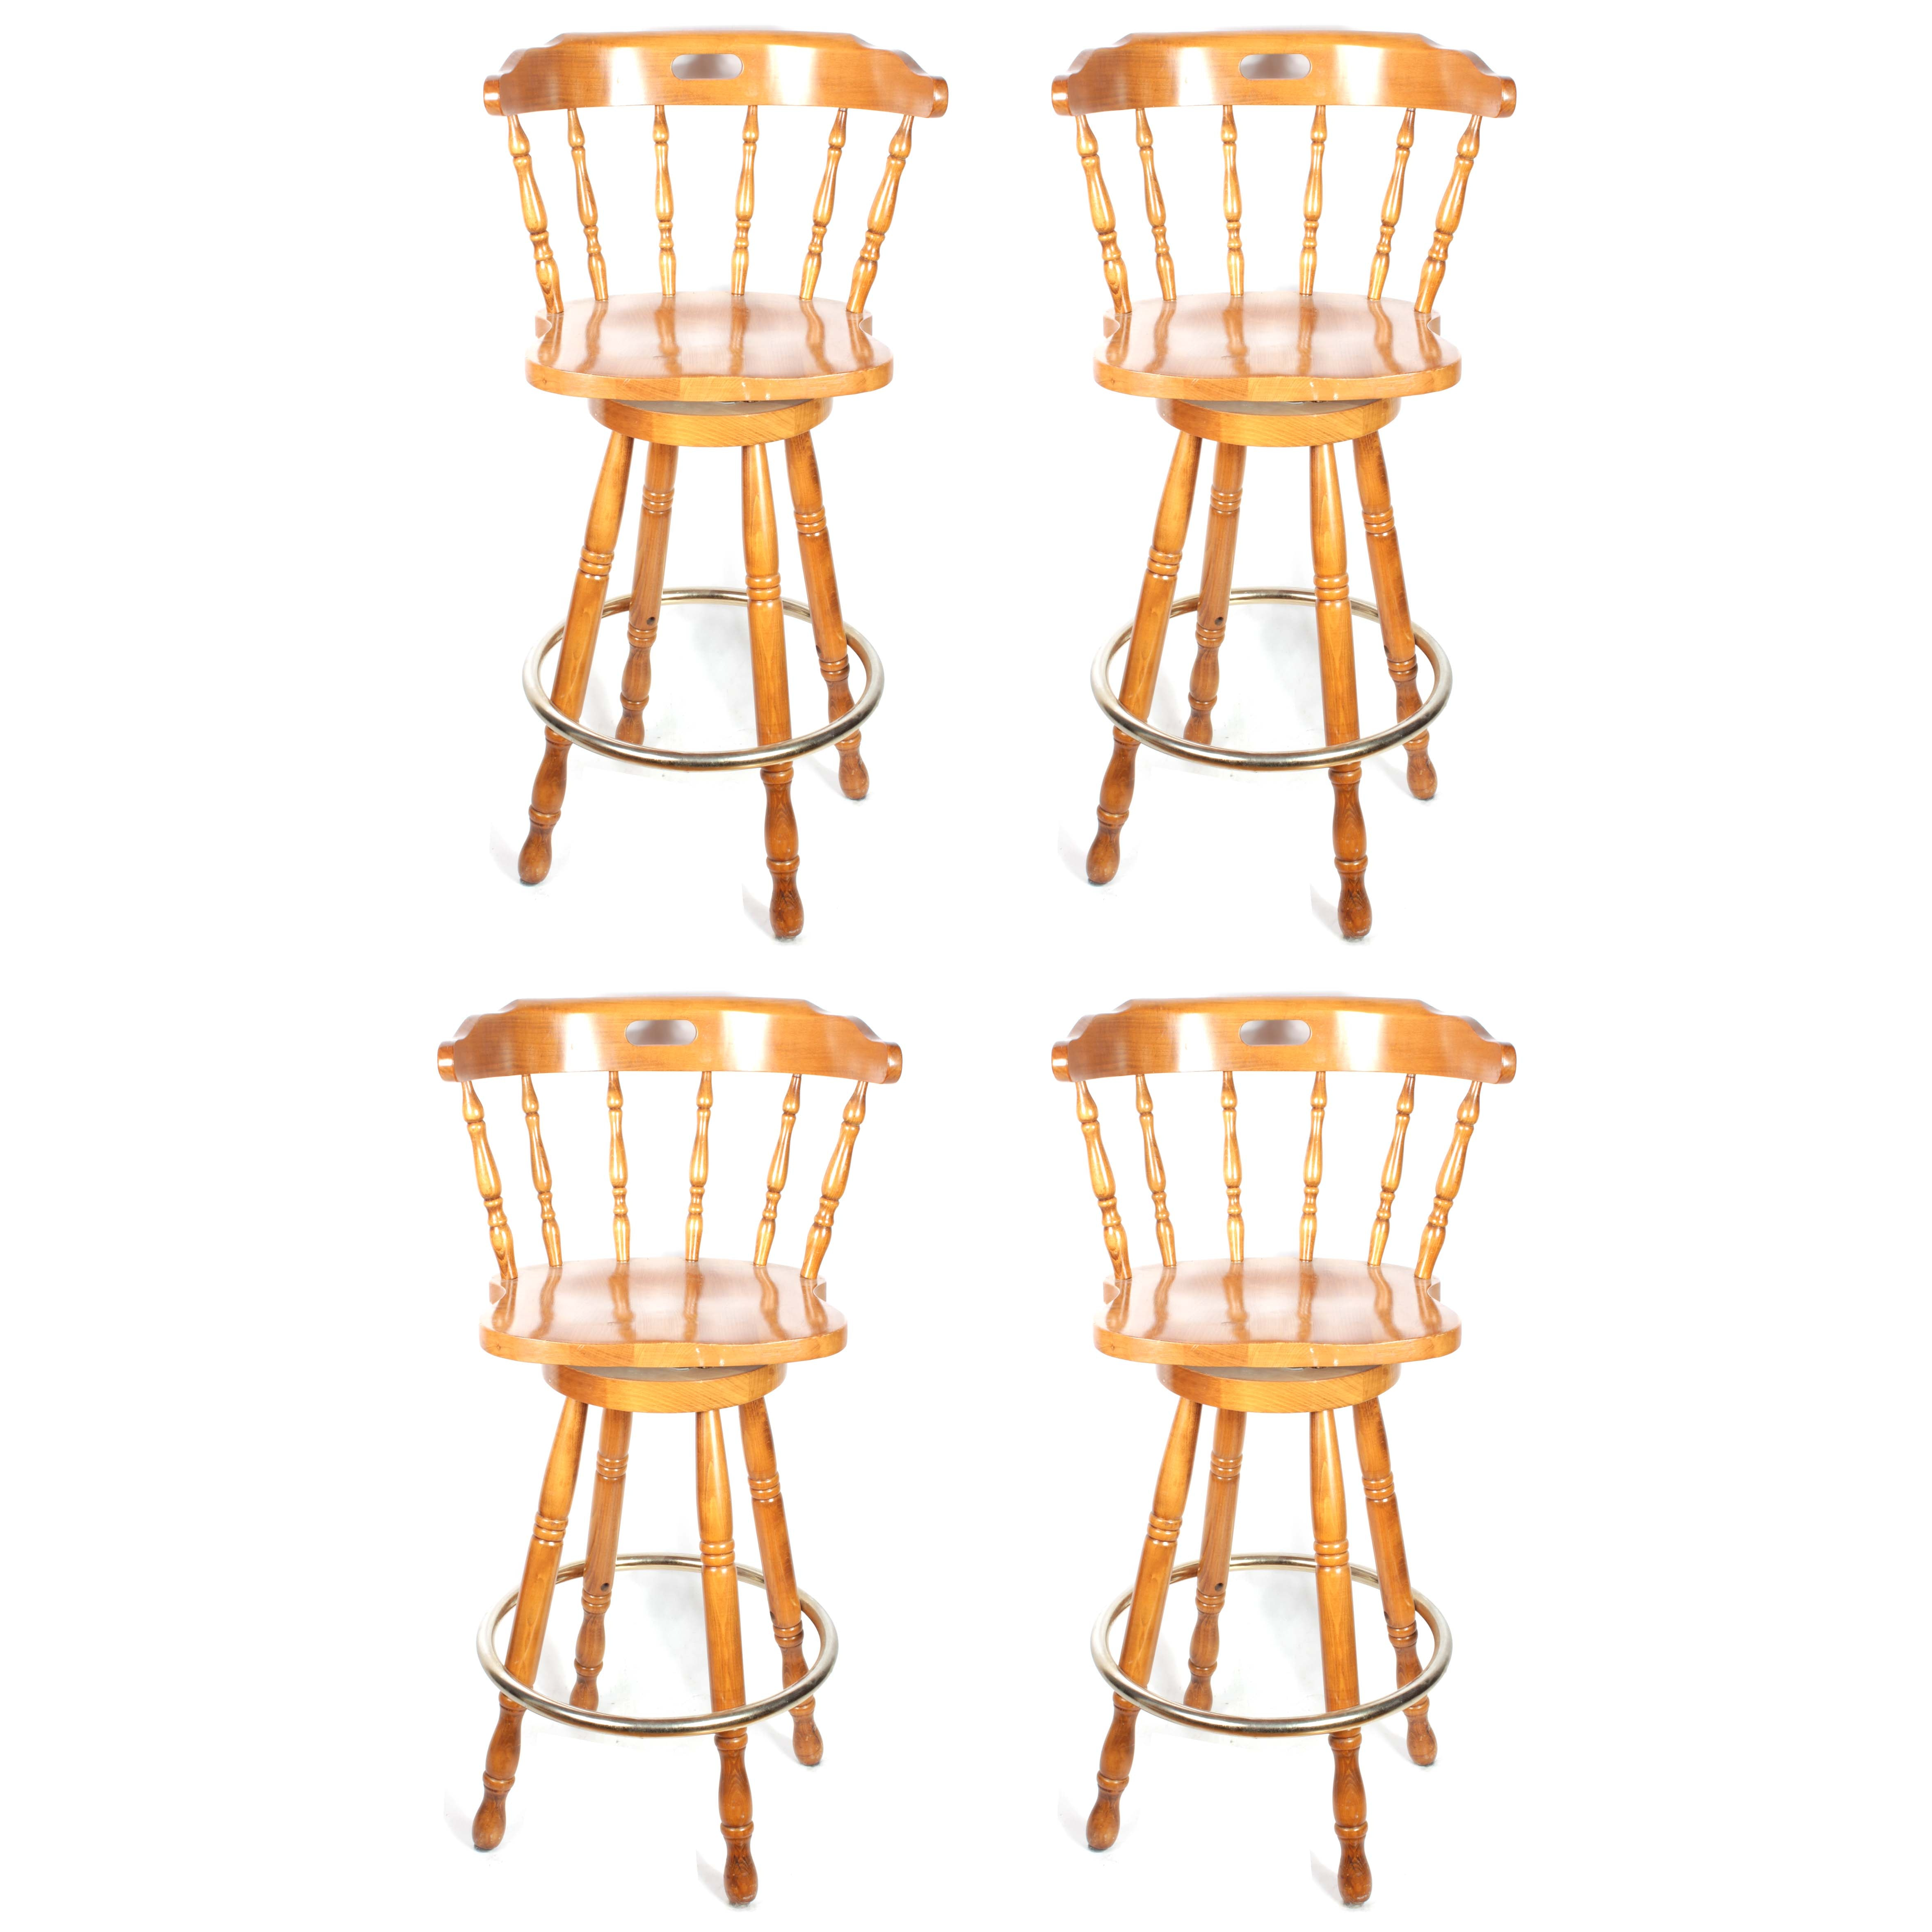 Set of Four Maple Spindle Back Swivel Bar Chairs, Circa 1970